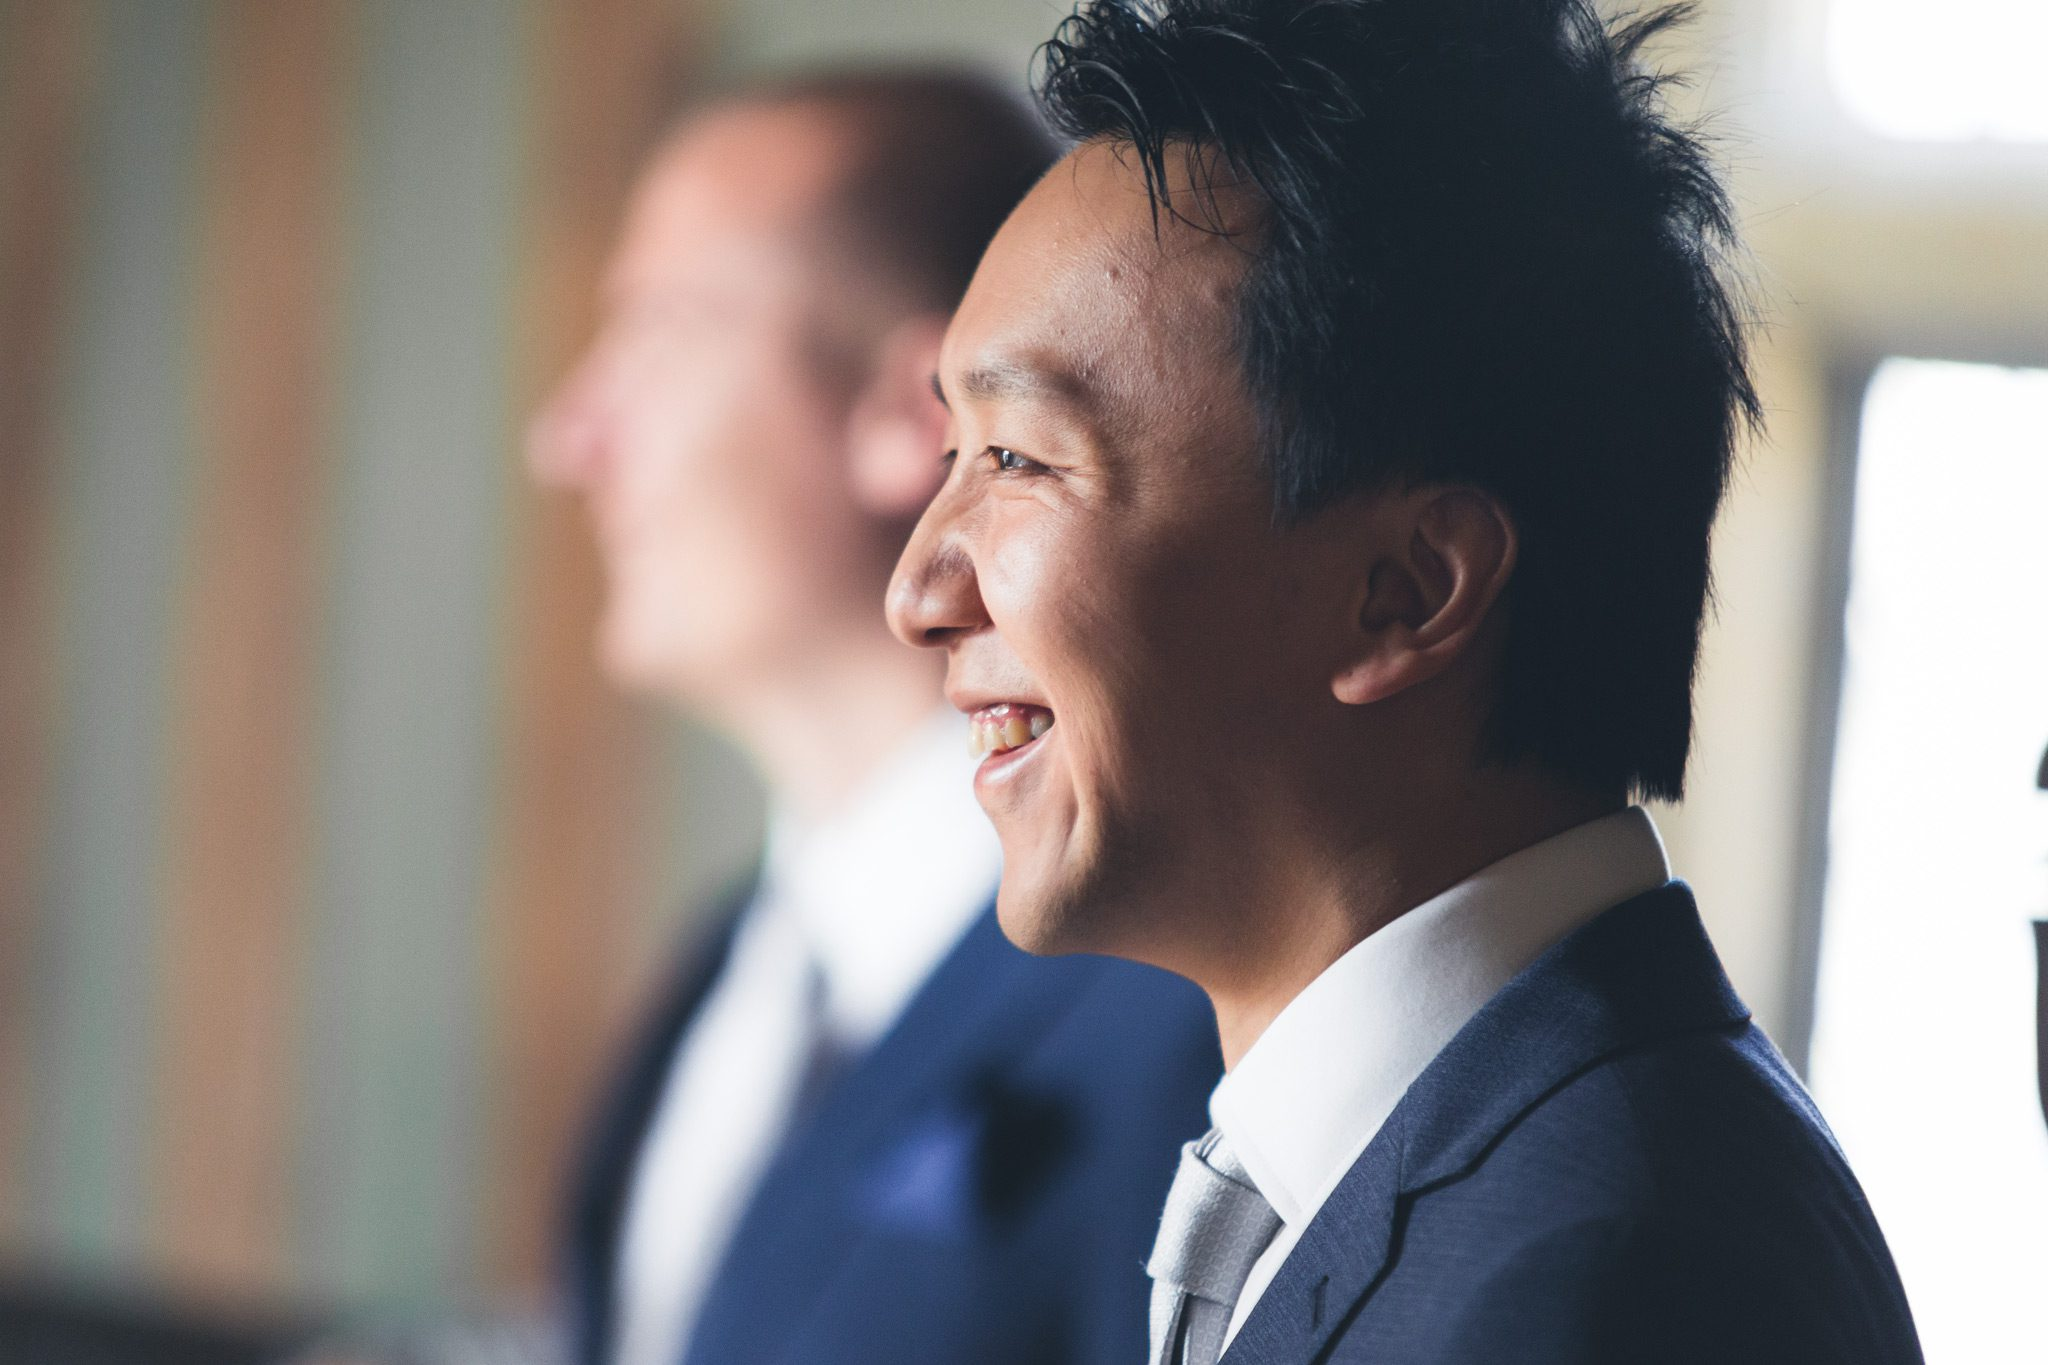 Summer Wedding at Haddon Hall - Lufei chatting to his guests